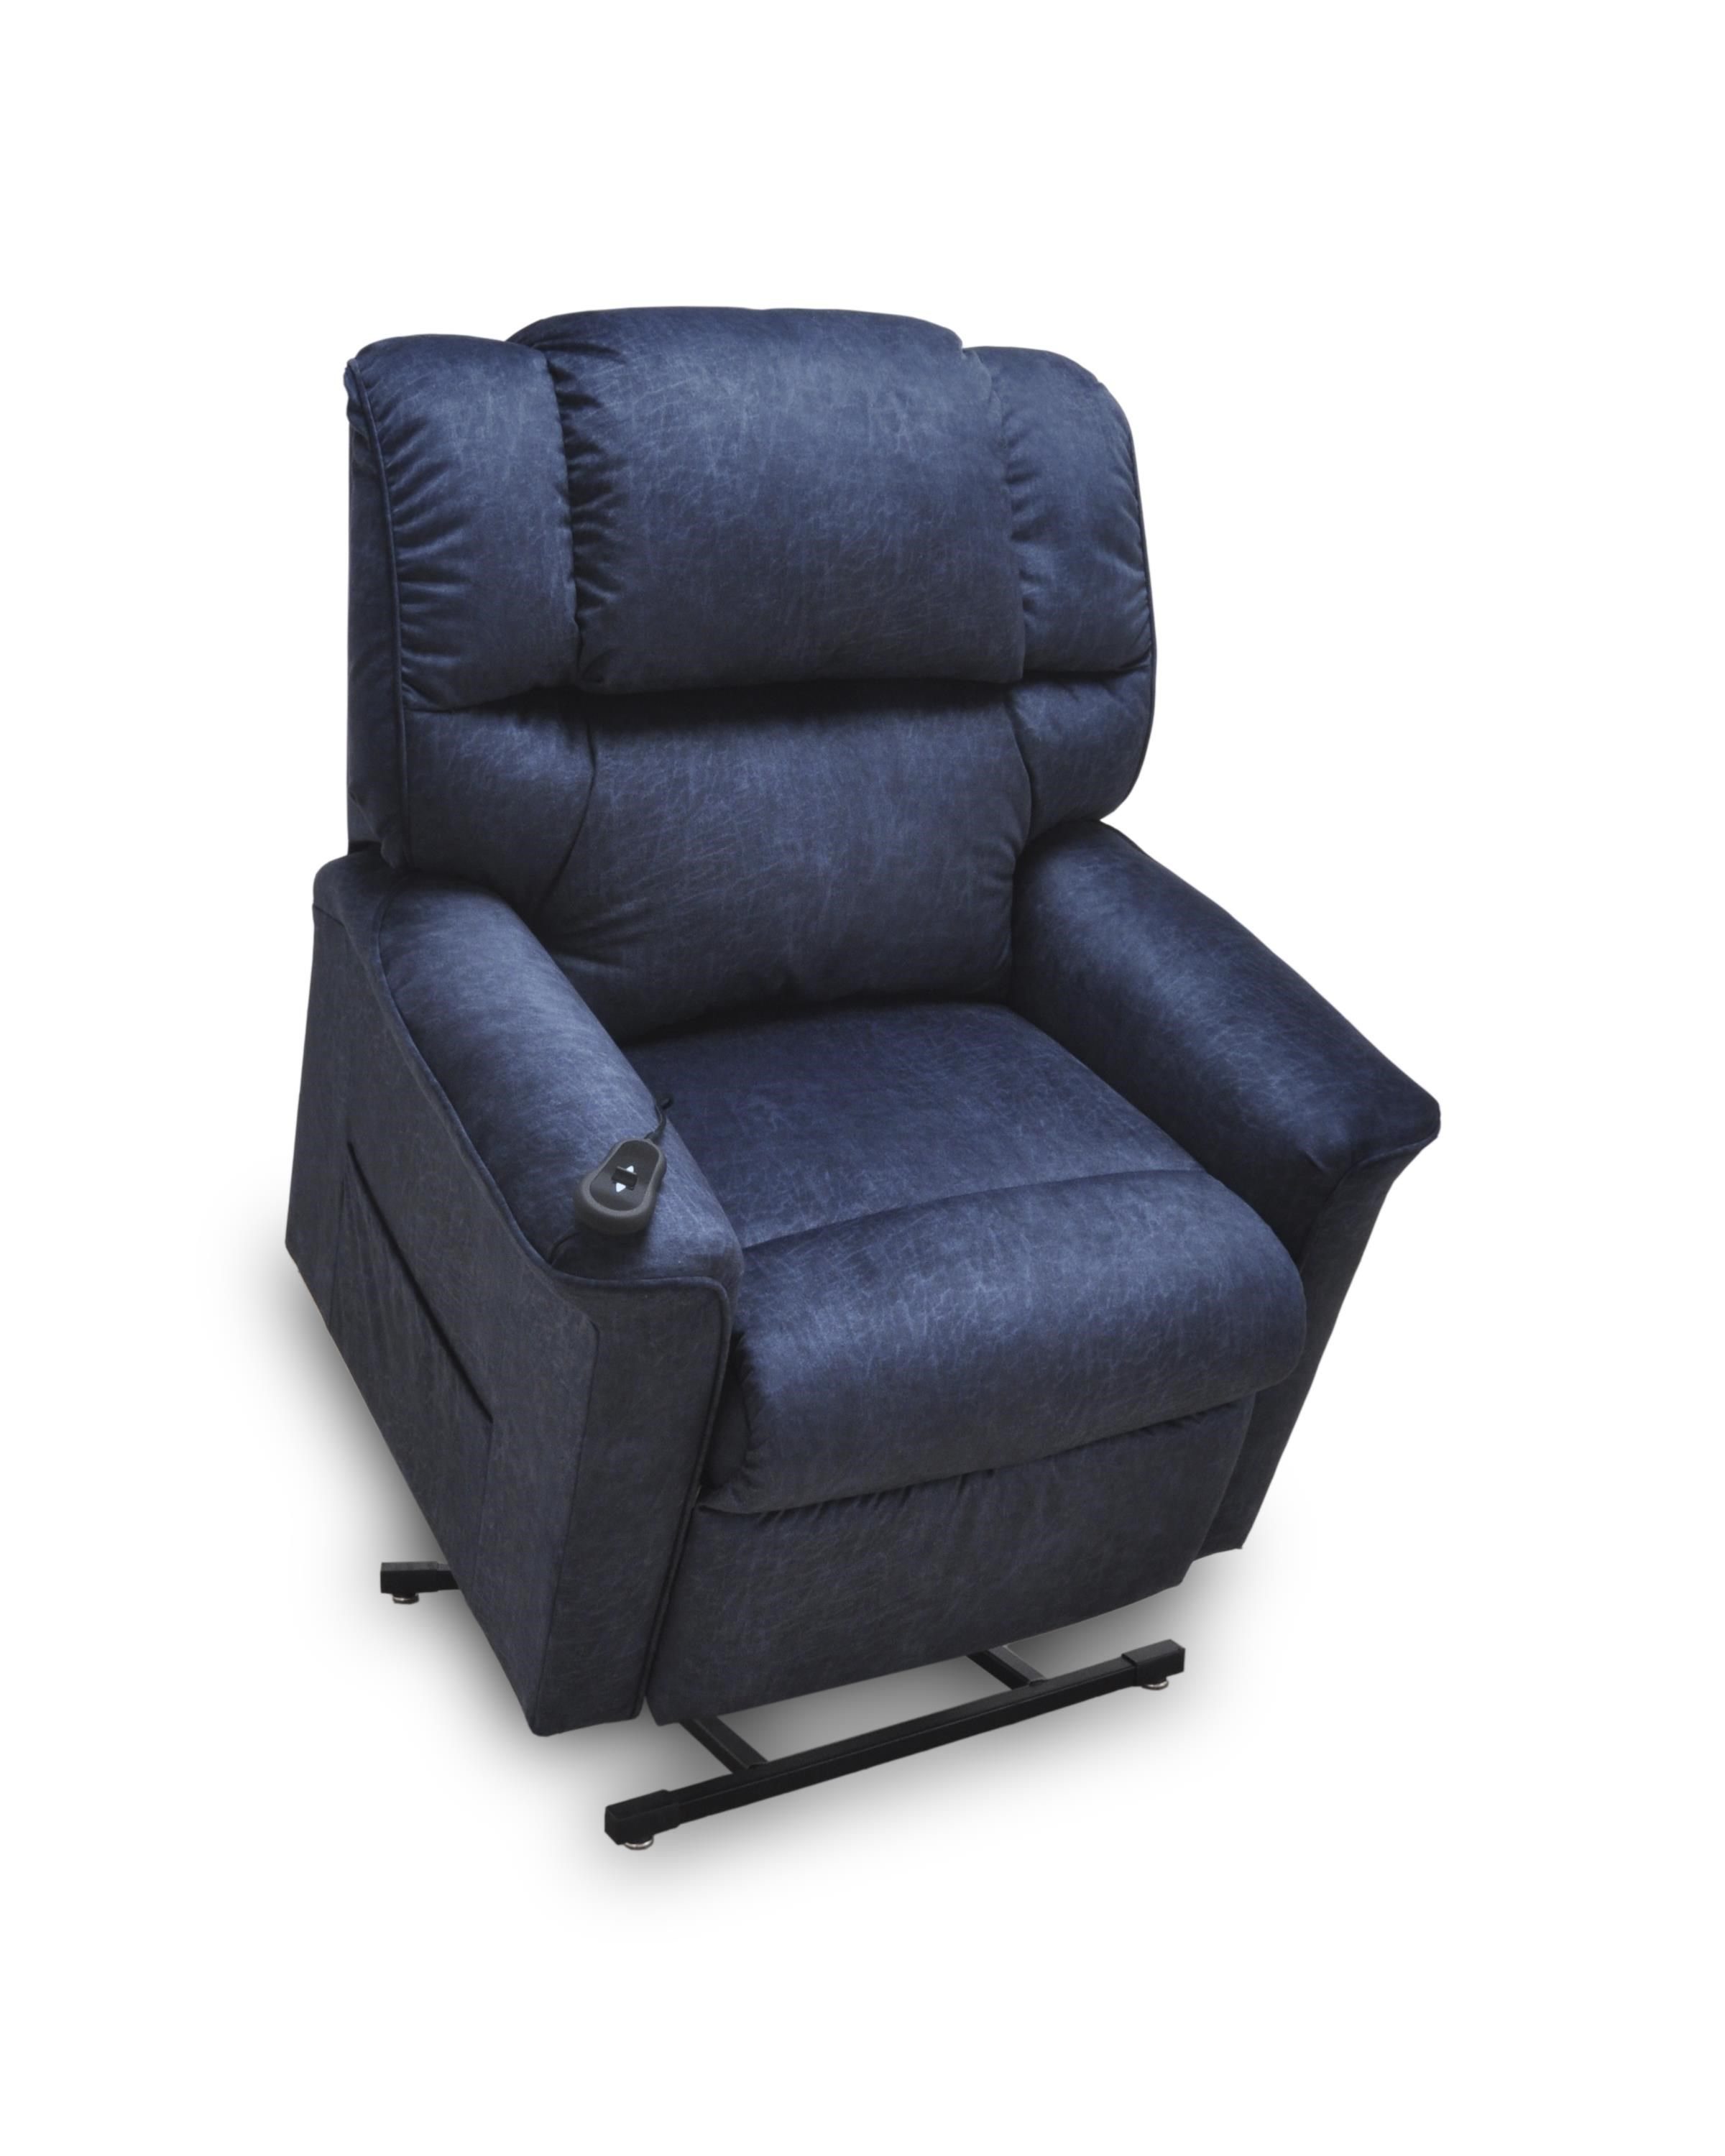 Franklin Lift and Power Recliners Oscar Lift Chair - Great American Home Store - Lift Recliner  sc 1 st  Great American Home Store : franklin power recliner - islam-shia.org